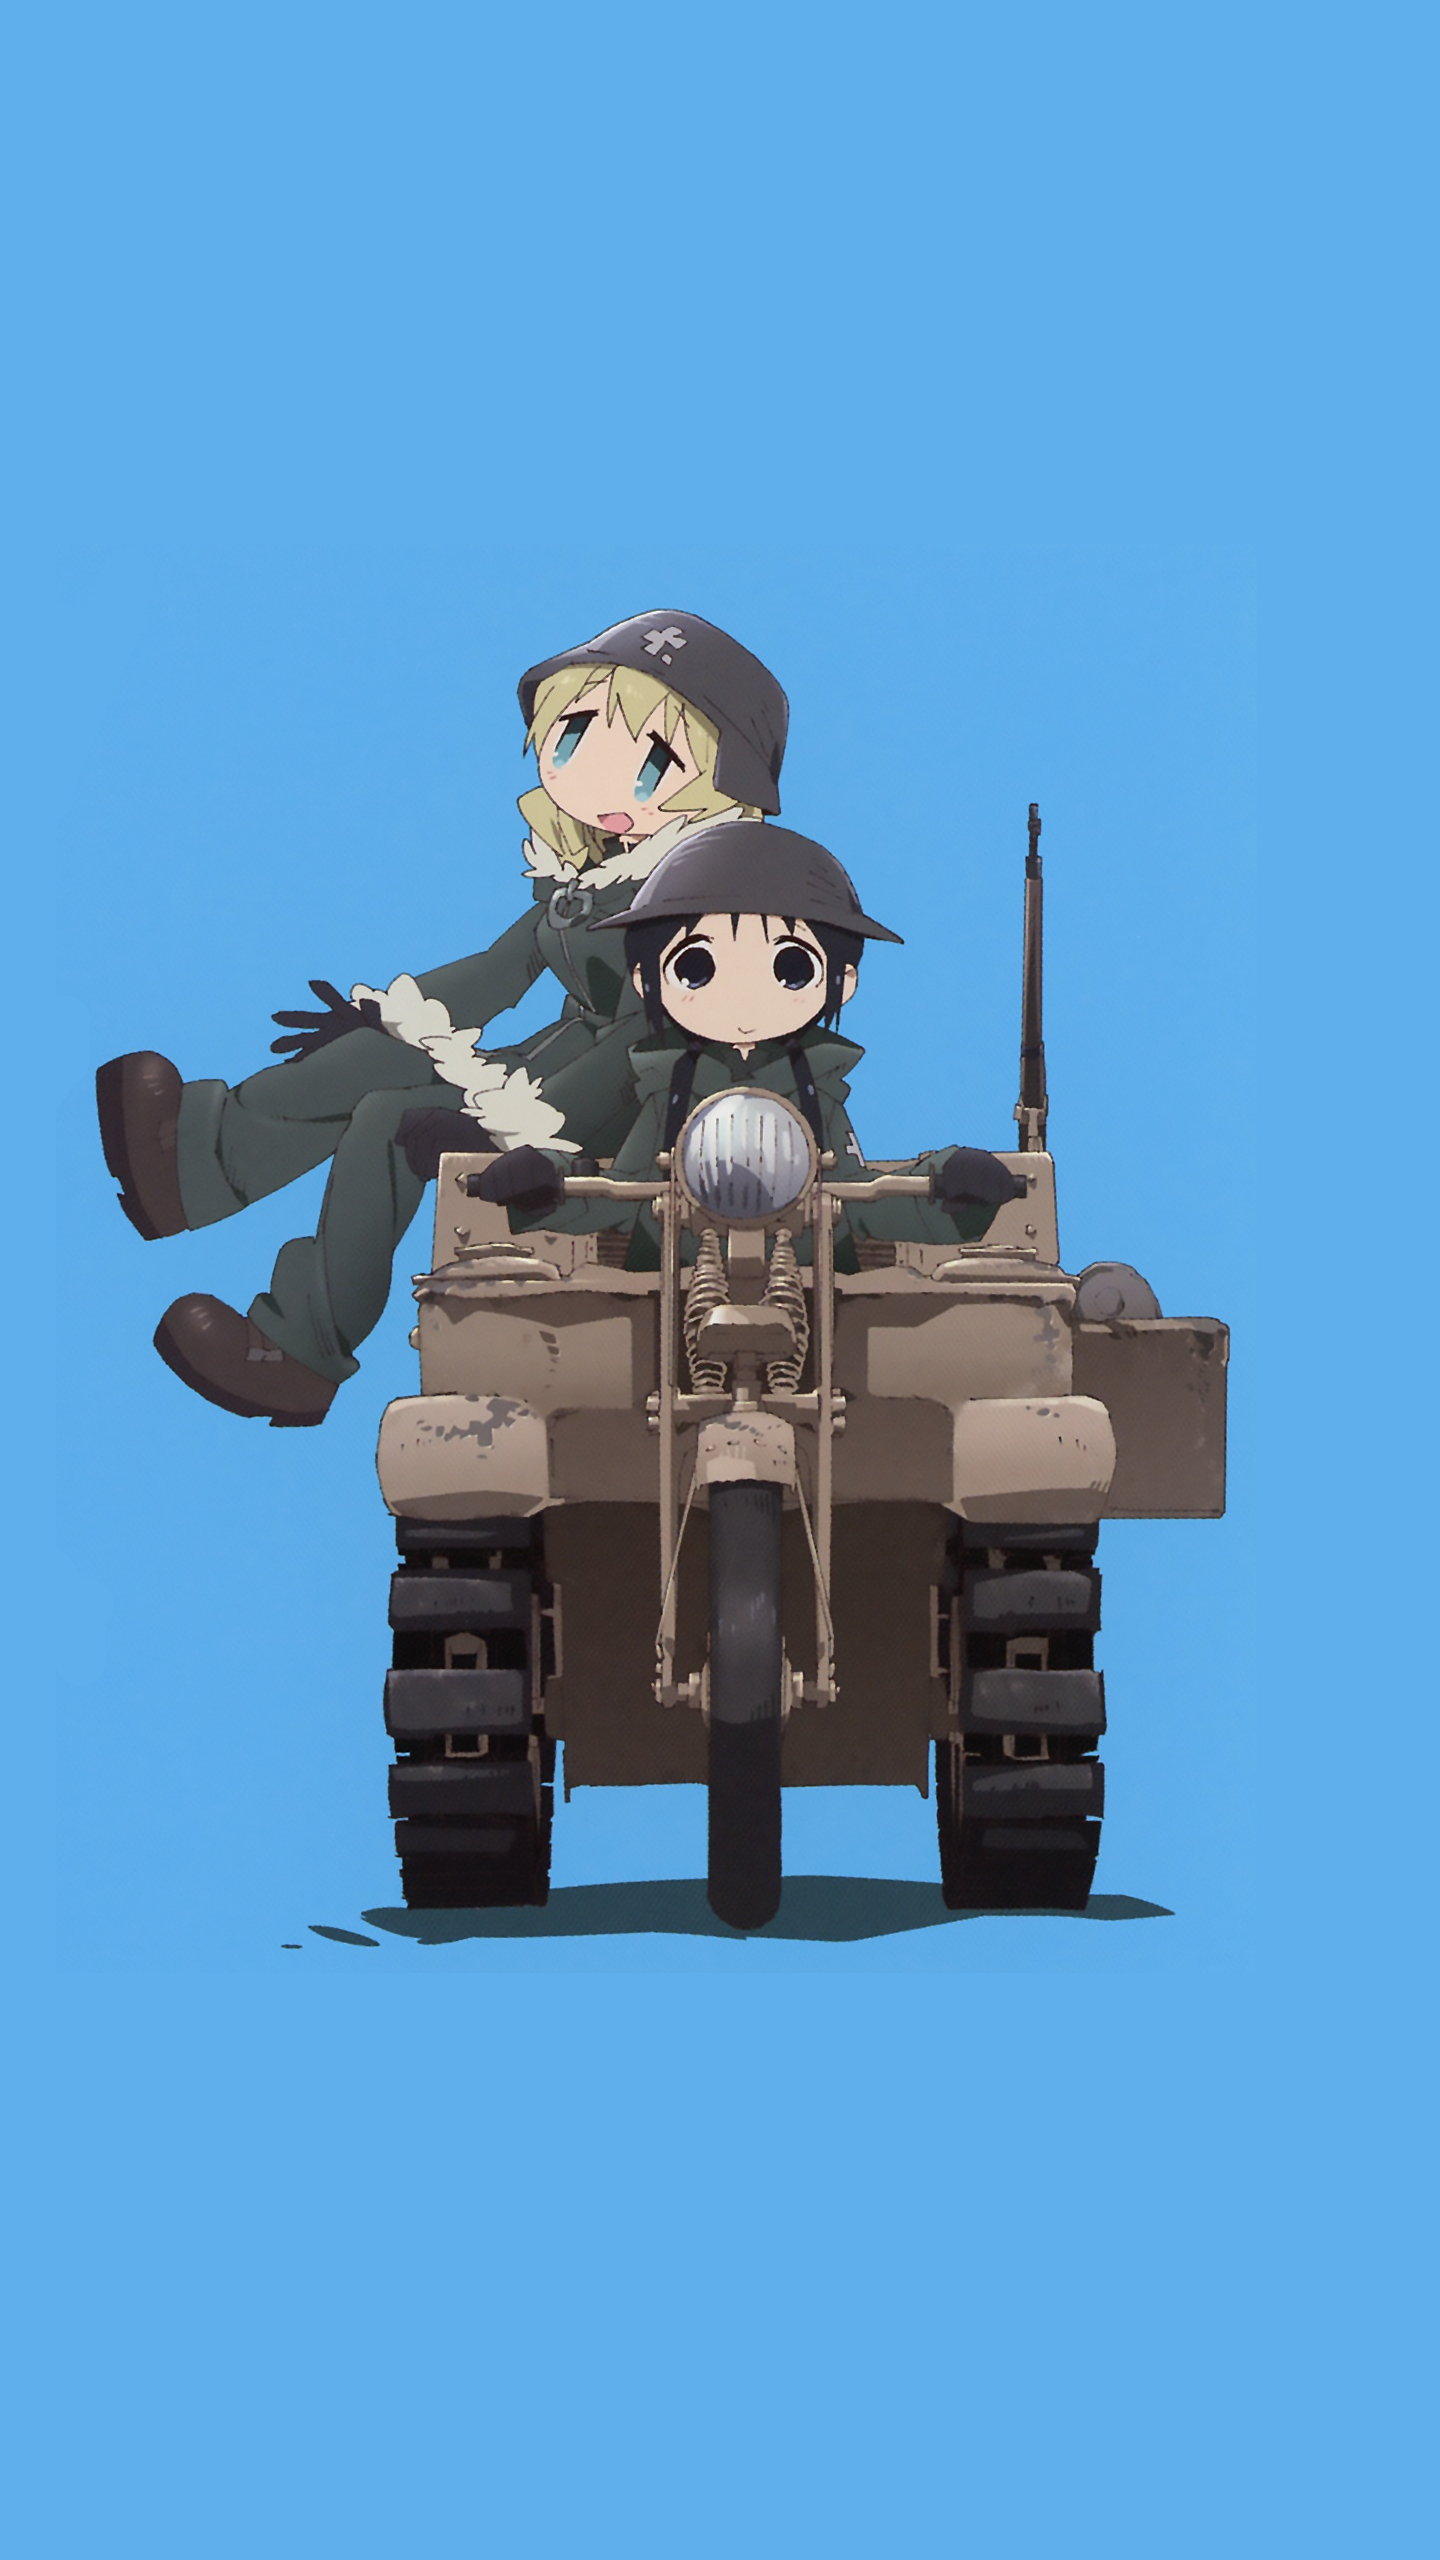 Phone wallpaper made from [Girls Last Tour] OP album [2560 x 1440 1440x2560